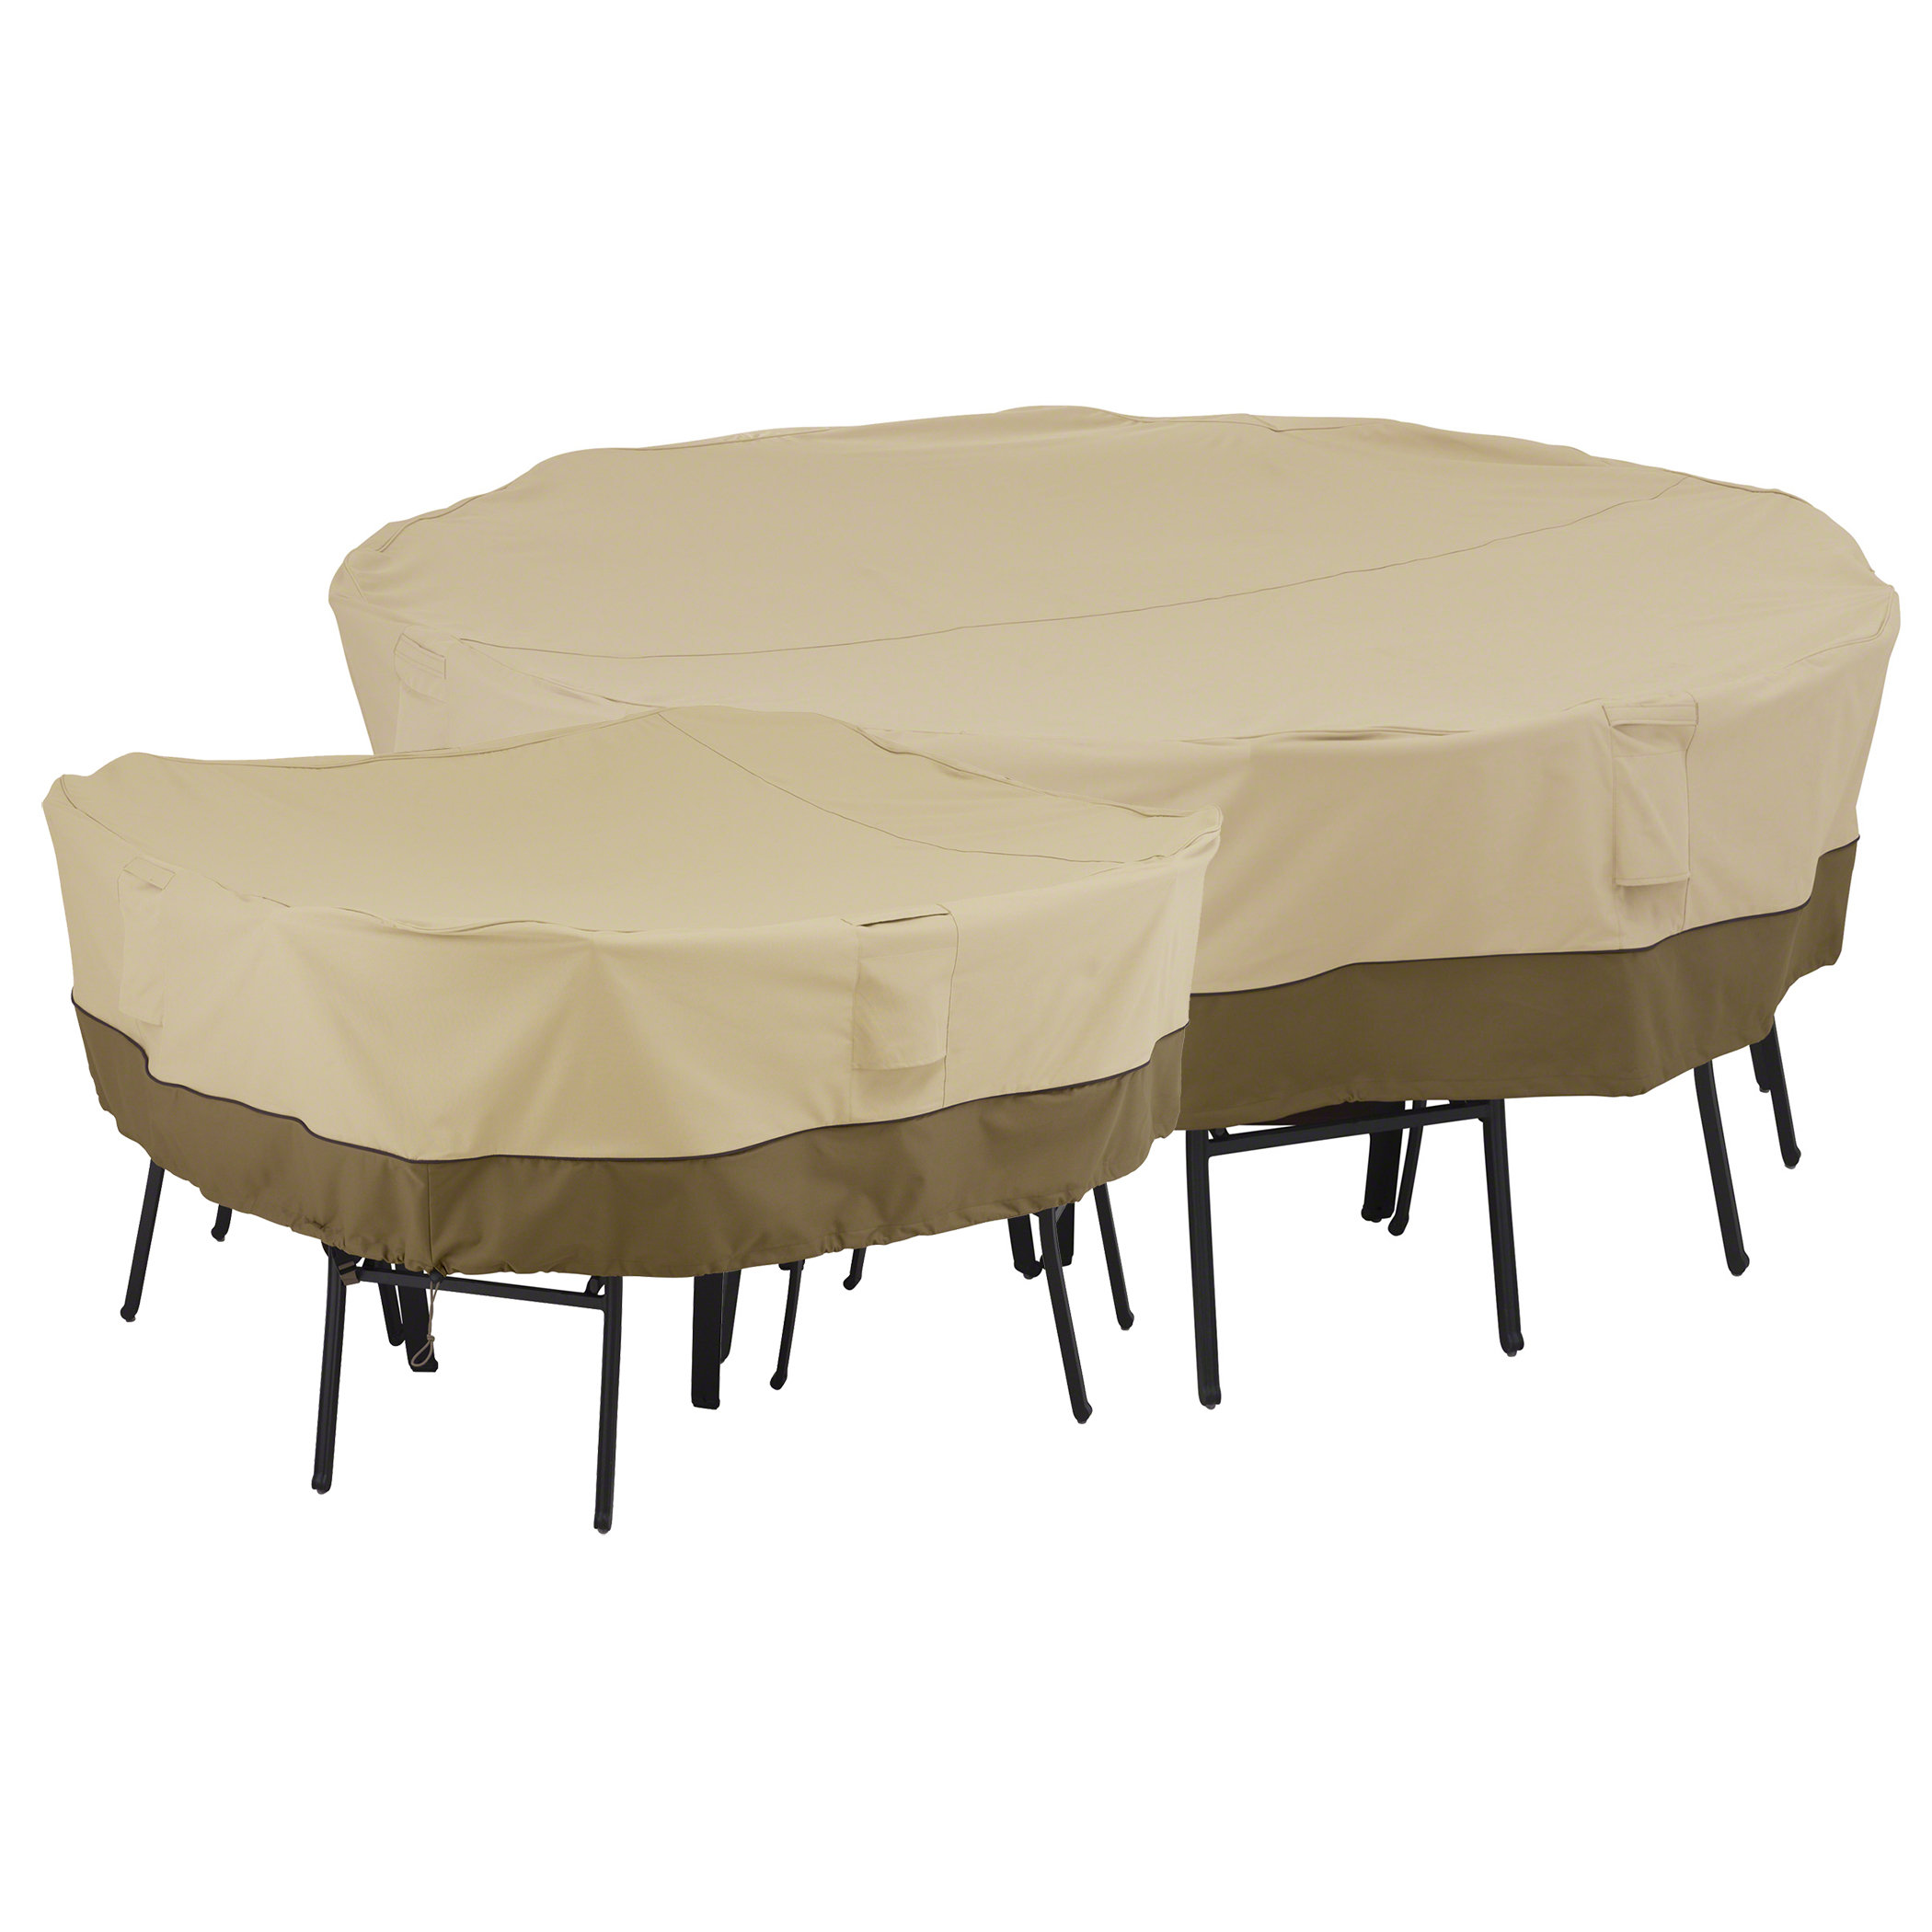 classic accessories veranda patio square table and chairs cover for 4 chair. Black Bedroom Furniture Sets. Home Design Ideas